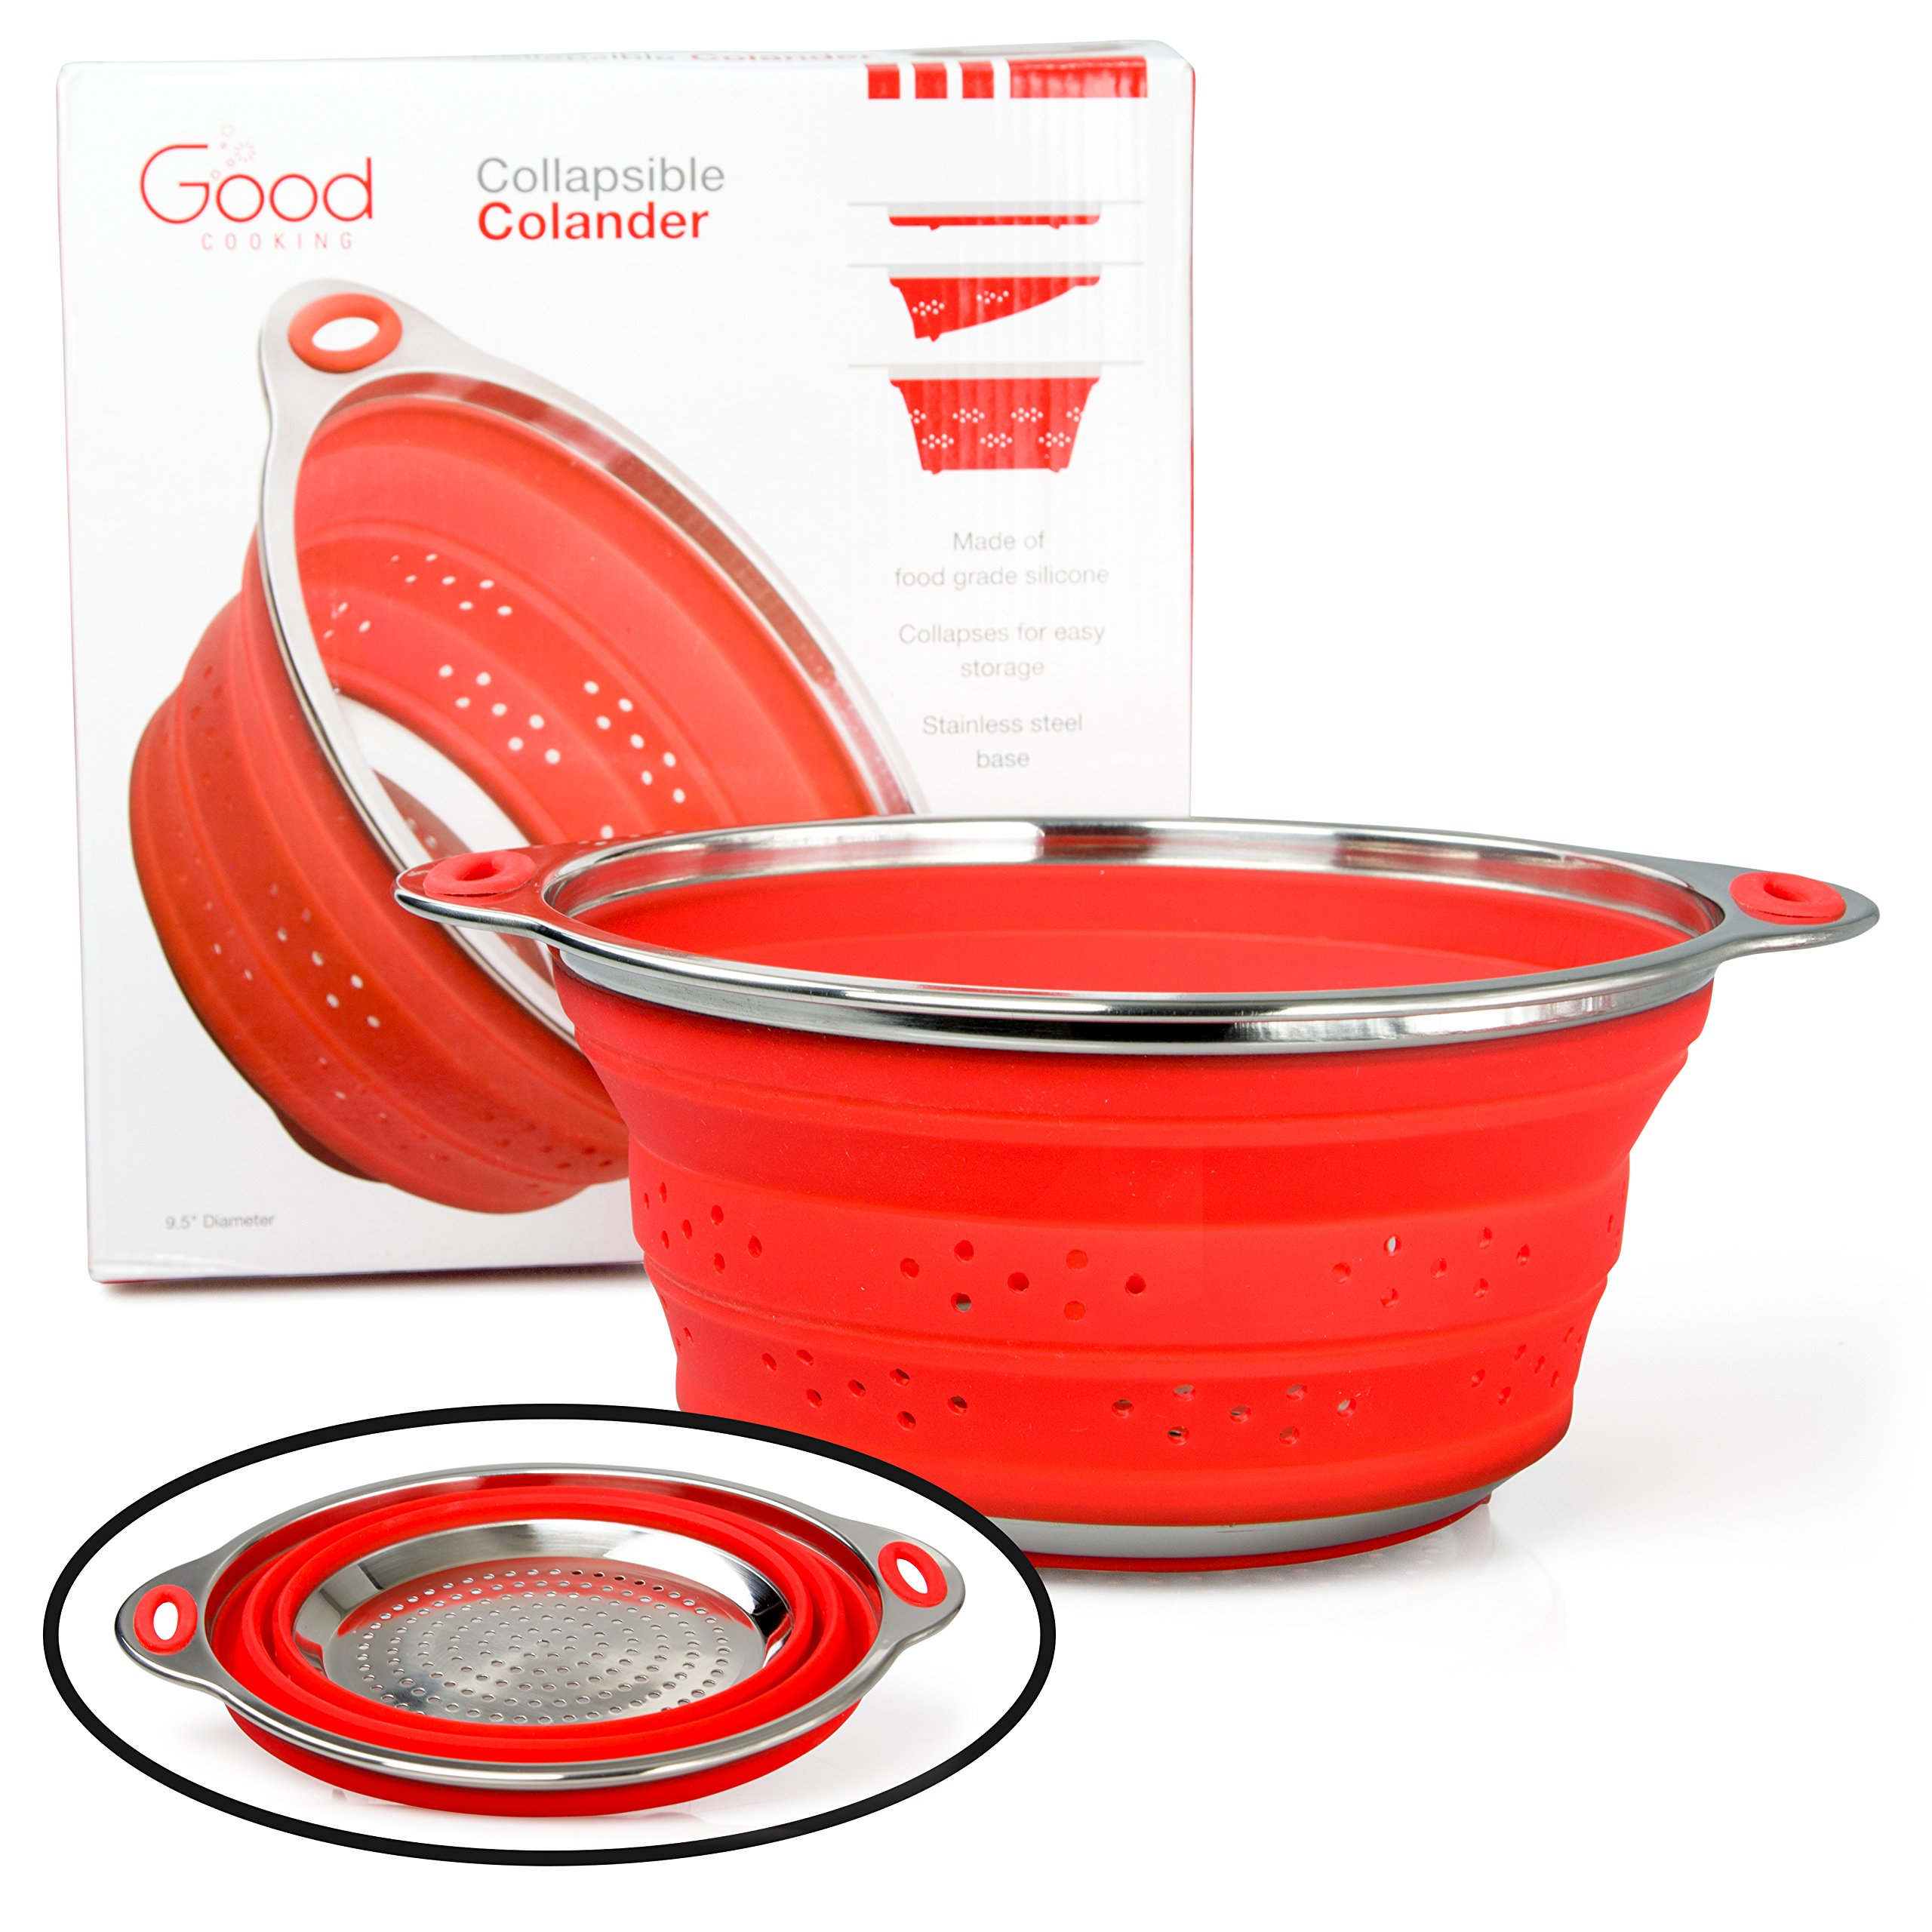 Collapsible Colander with Stainless Steel Base (Extra Large 9.5'' Diamater)- 100% Food Grade Silicone and BPA Free by Good Cooking